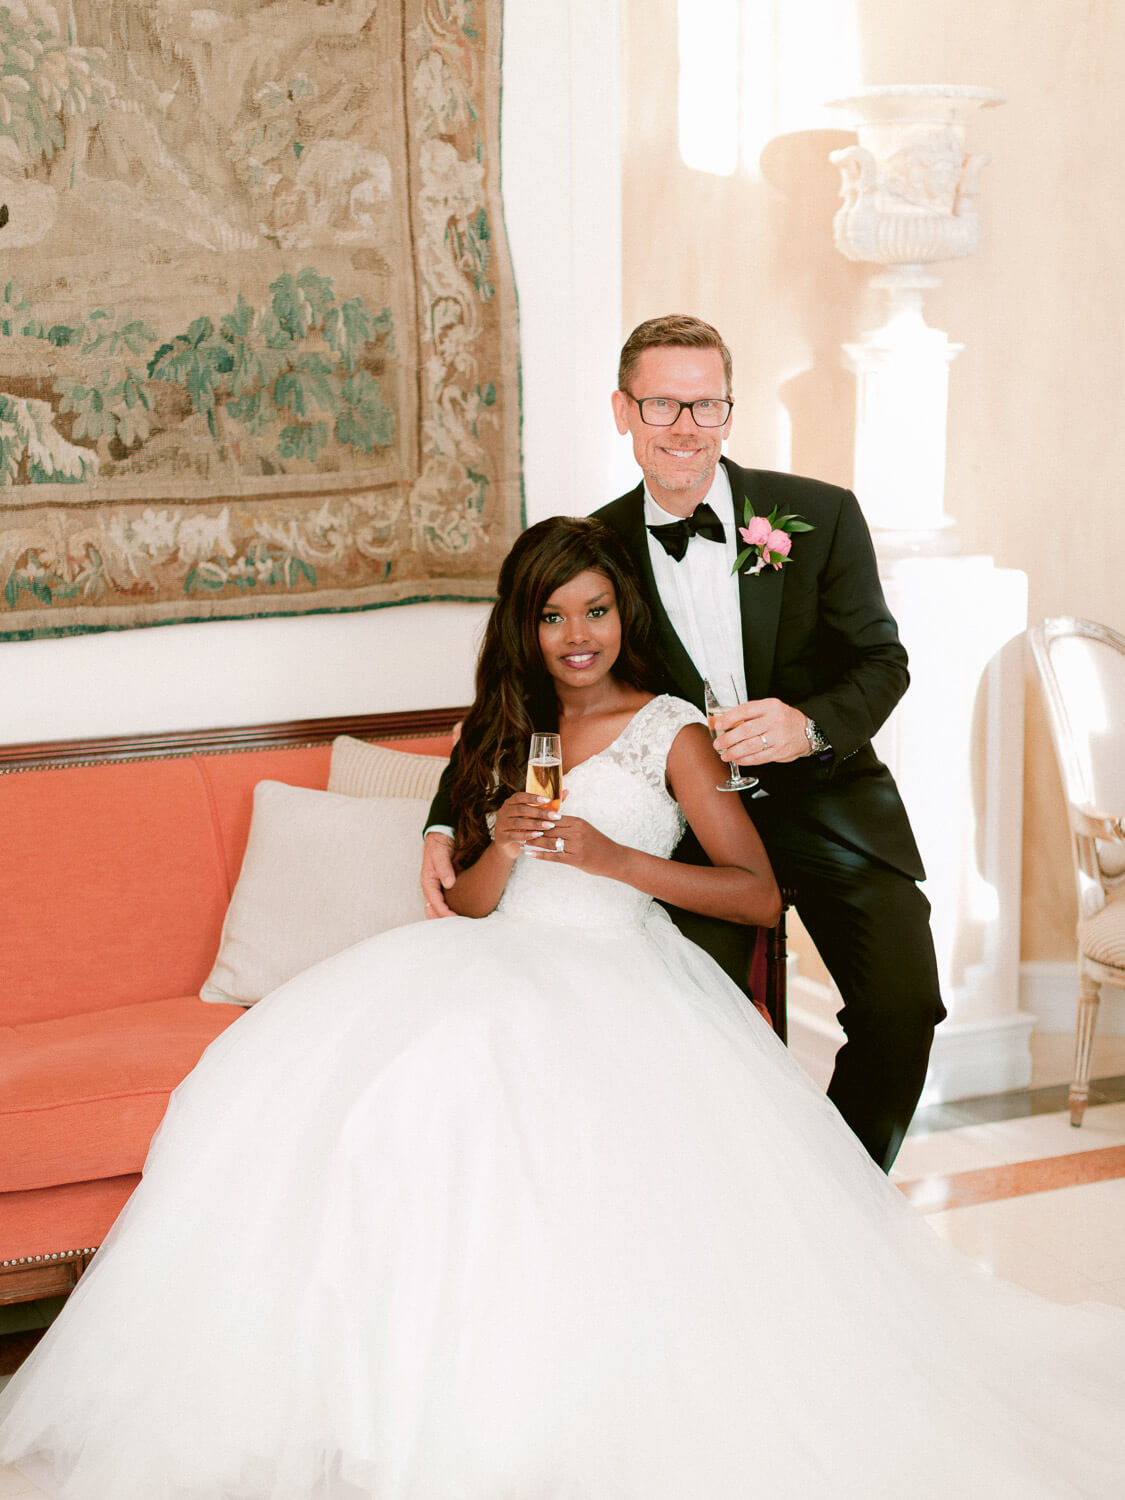 charming wedding couple on an elegant crimson couch in Hotel Palacio Estoril by Portugal Wedding Photographer